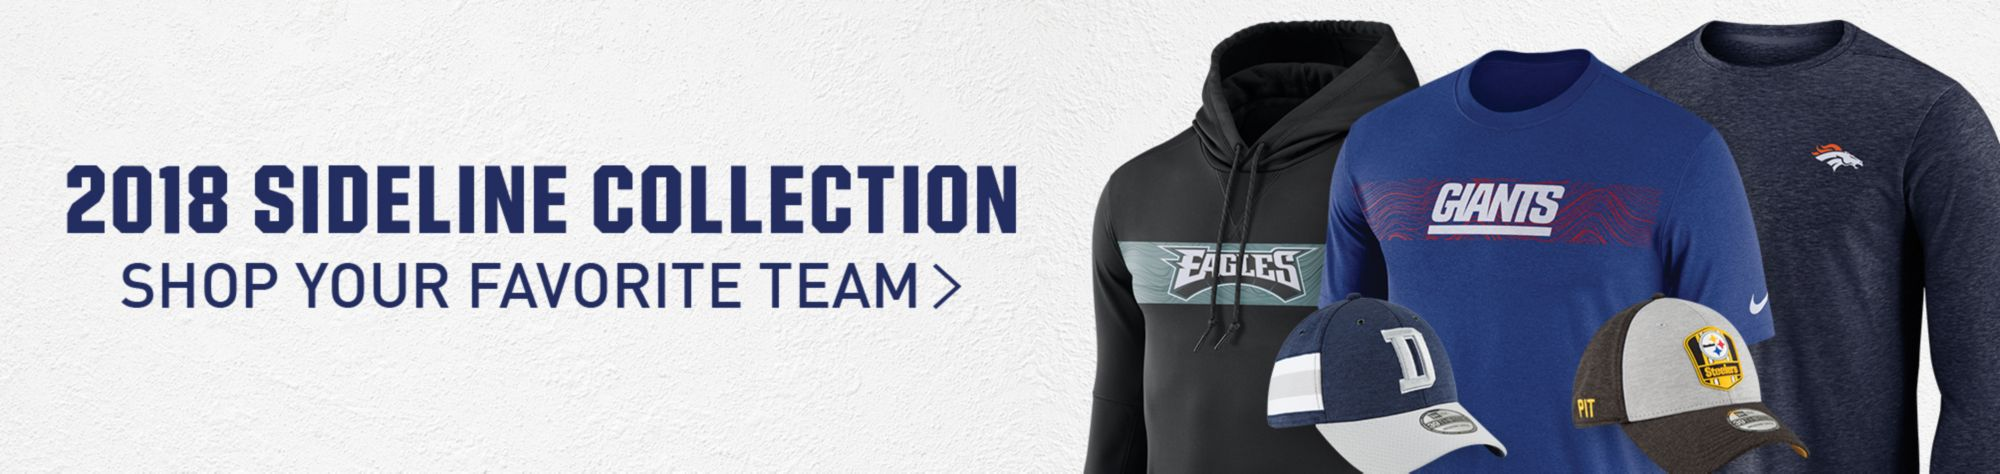 2018 Sideline Collection Shop your favorite team>